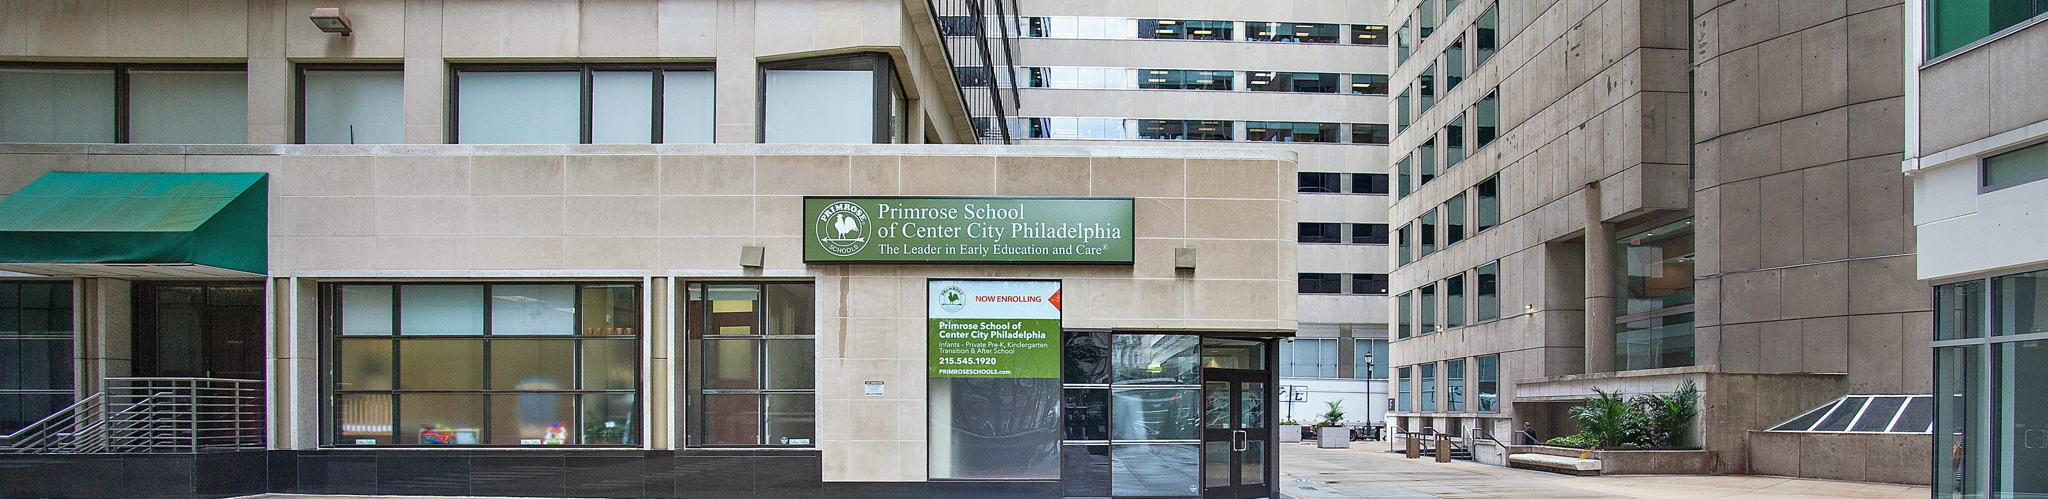 image of Primrose School of Center City Philadelphia